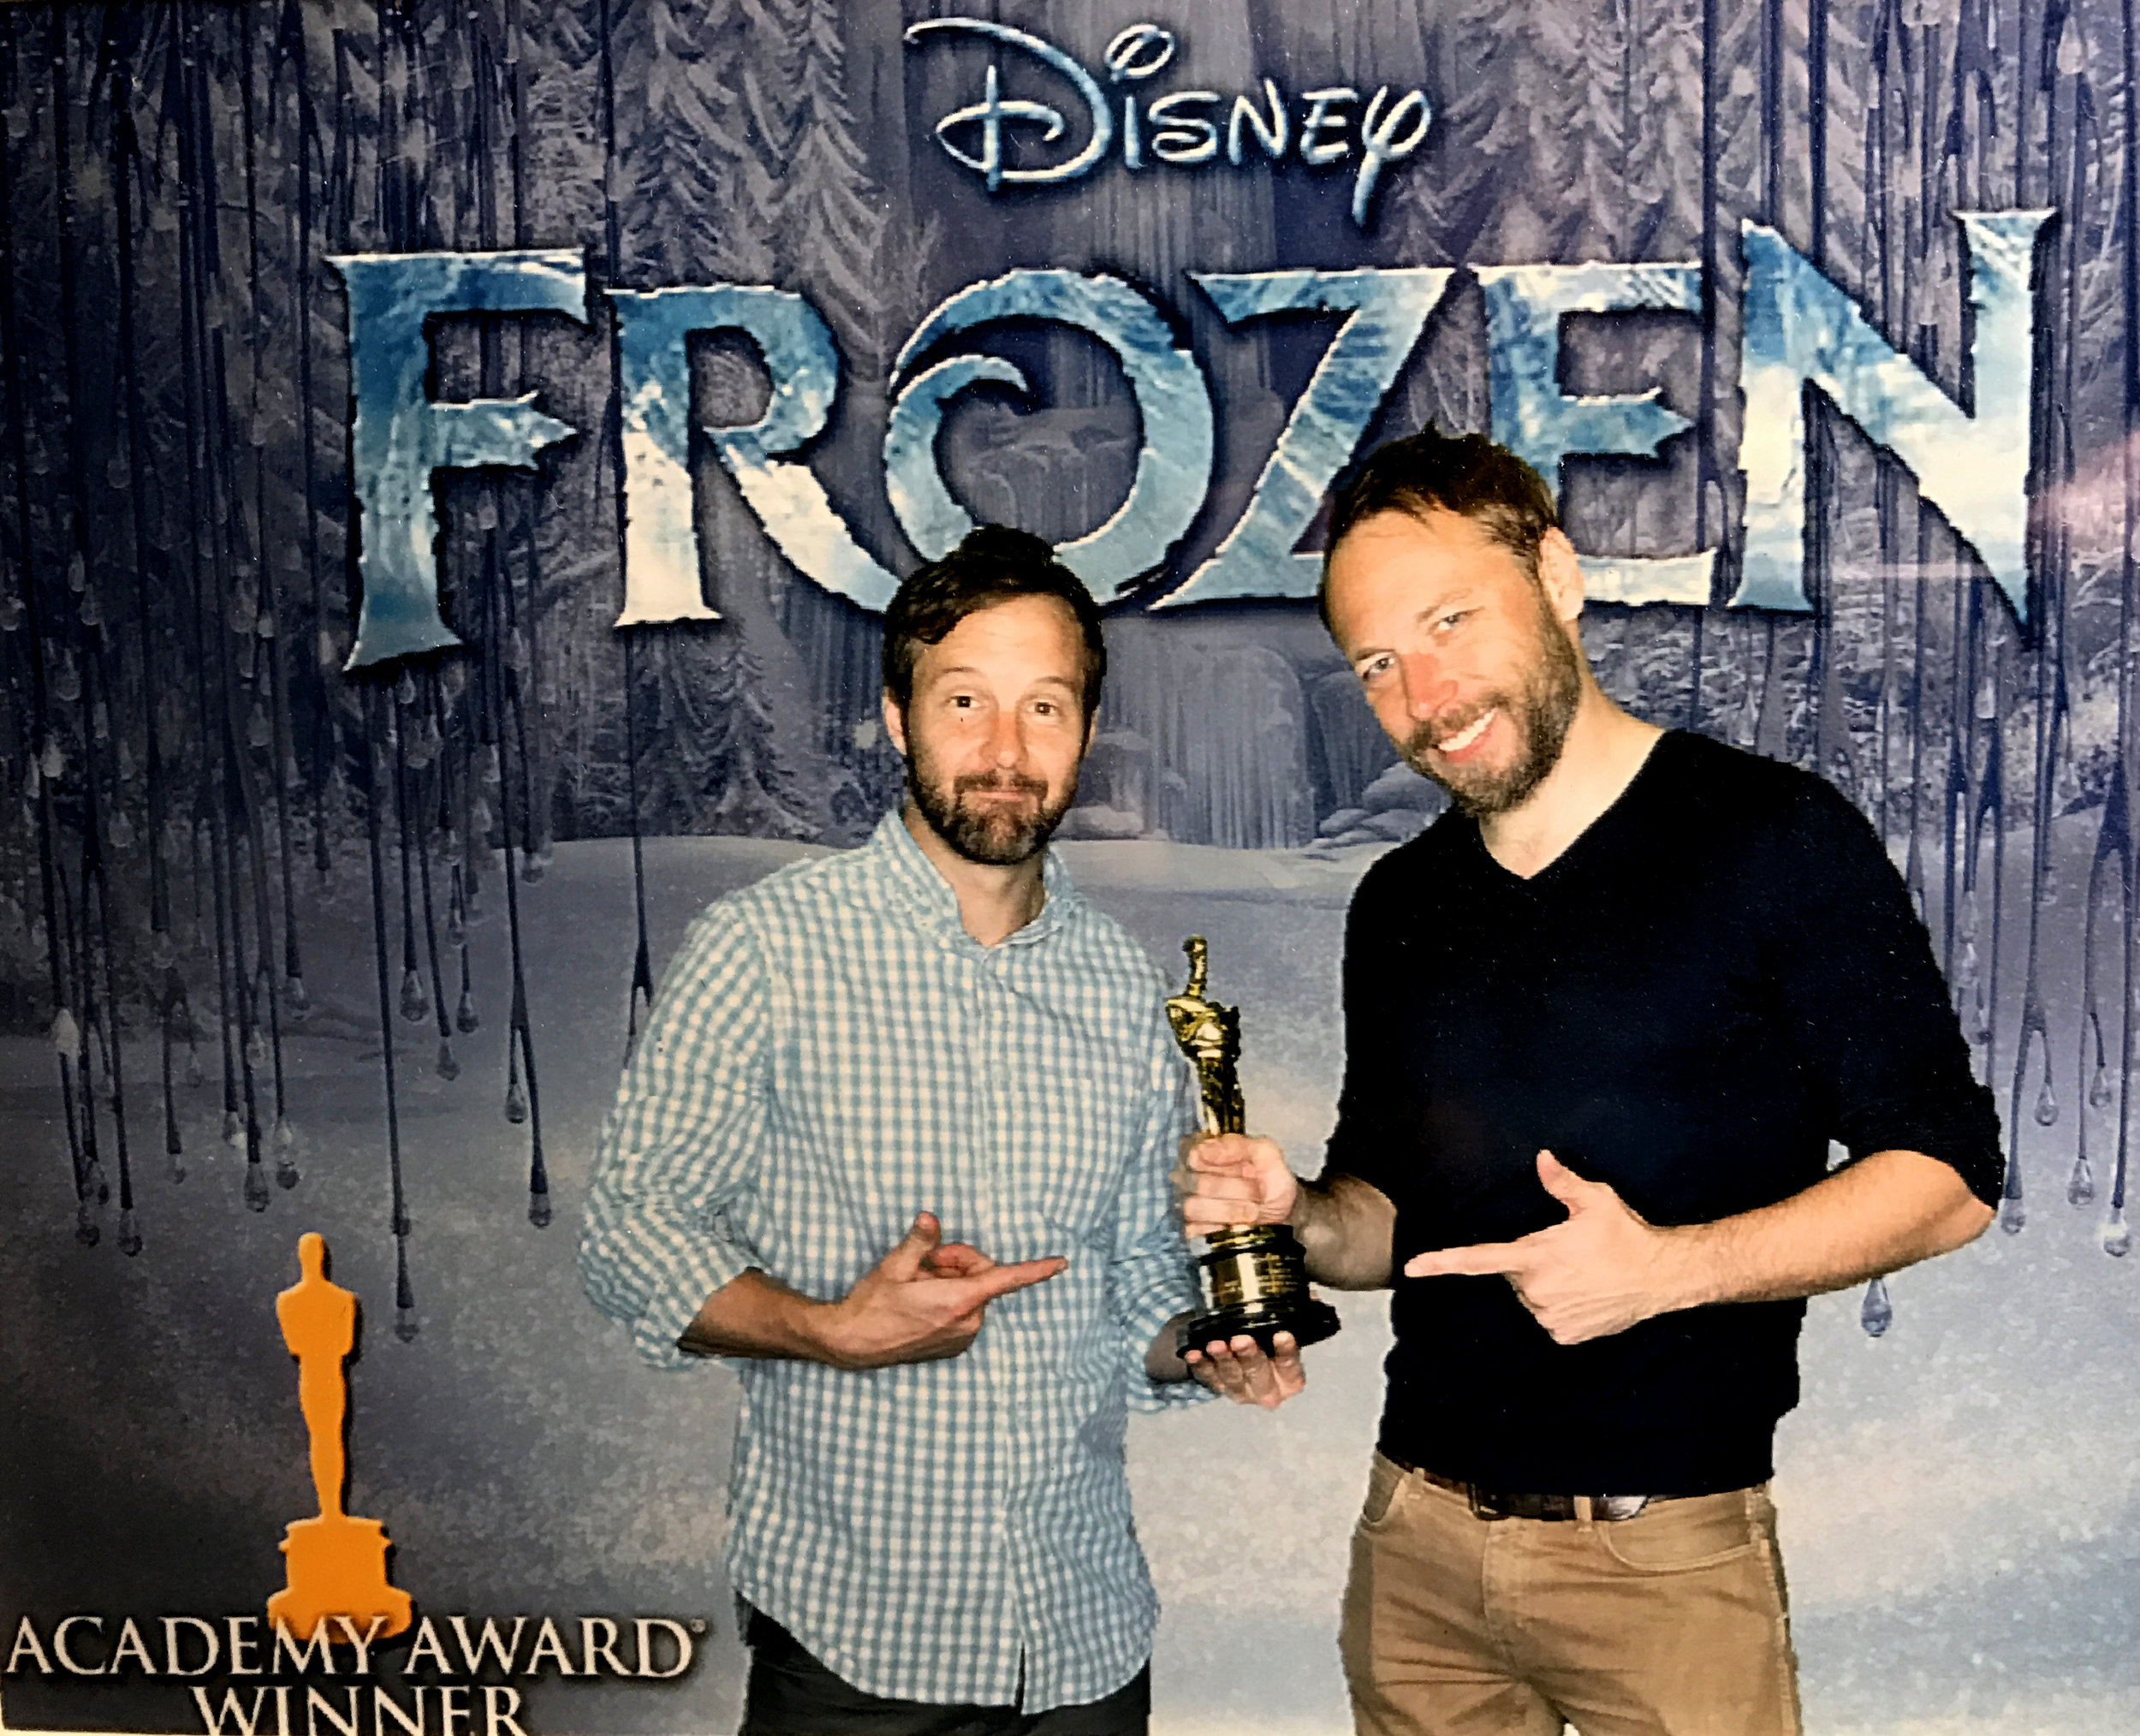 FILM CREDITS - FROZEN • WRECK-IT RALPH • TANGLED • FEAST THE POLAR EXPRESS • BEOWULF • GEFORCE THE CHRONICLES OF NARNIA • FROZEN FEVER